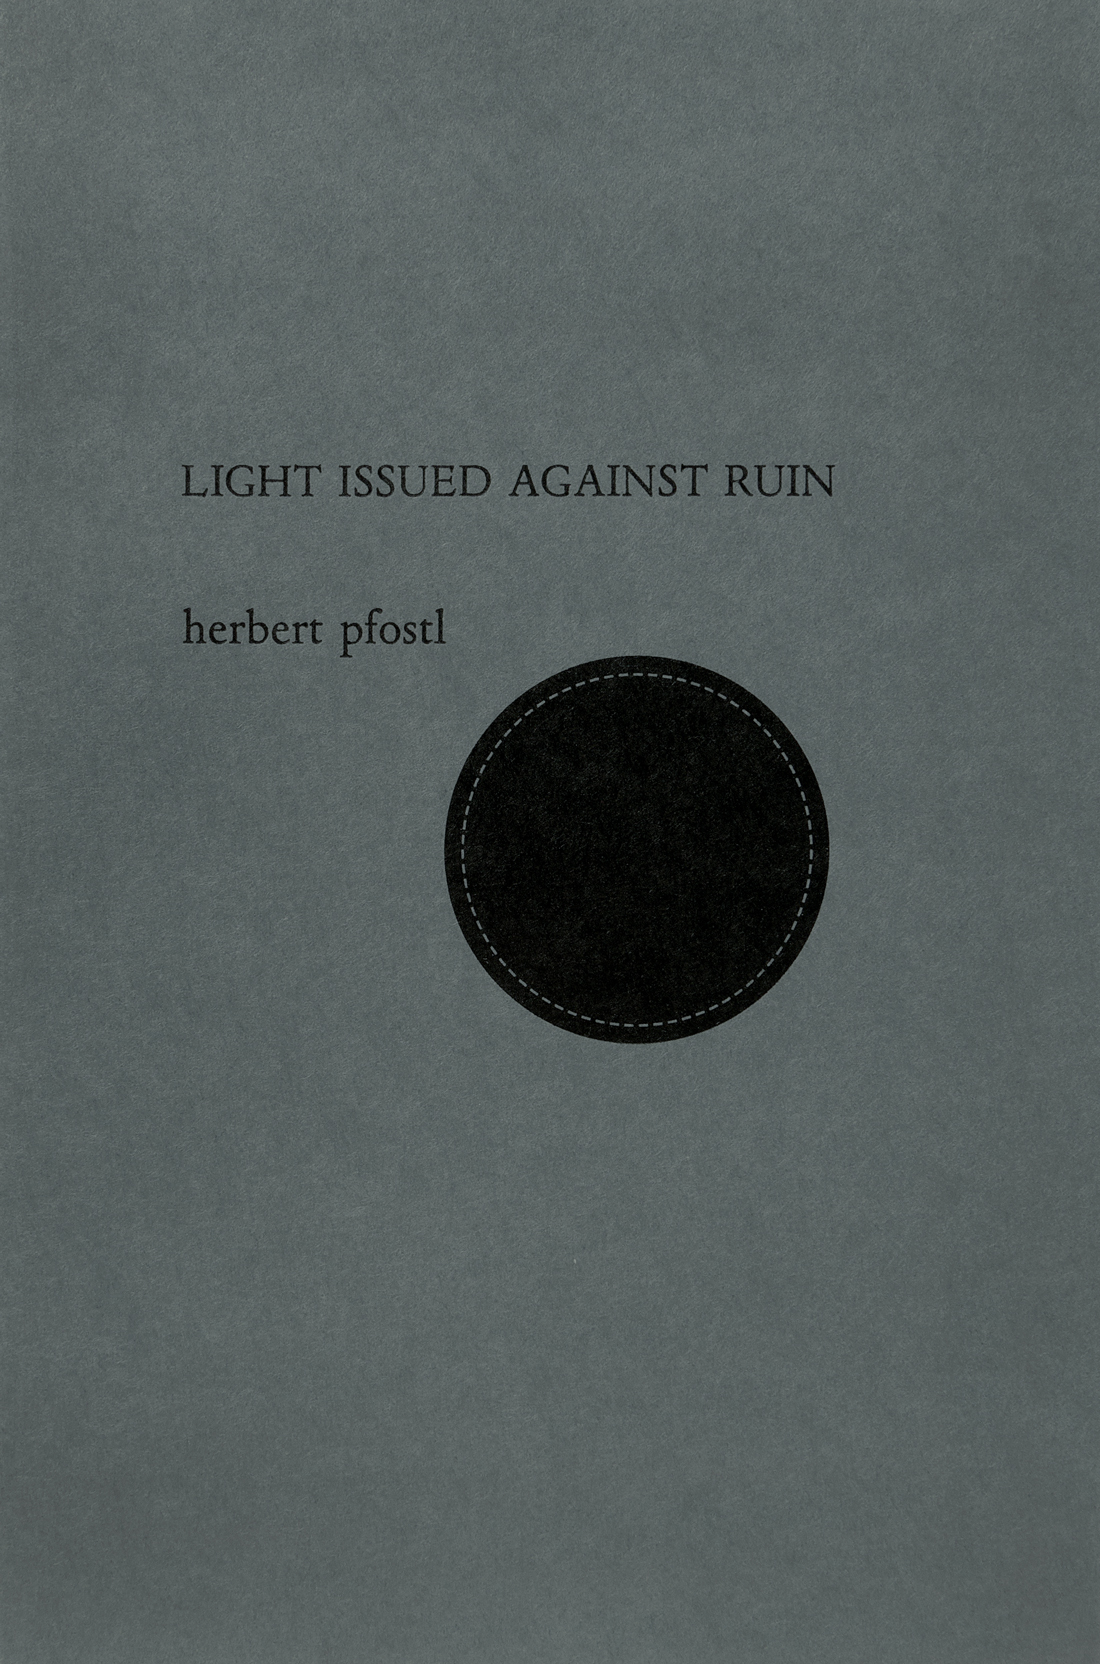 The-Brother-In-Elysium-Herbert-Pfostl-Light-Issued-Against-Ruin-Front-Cover.jpg